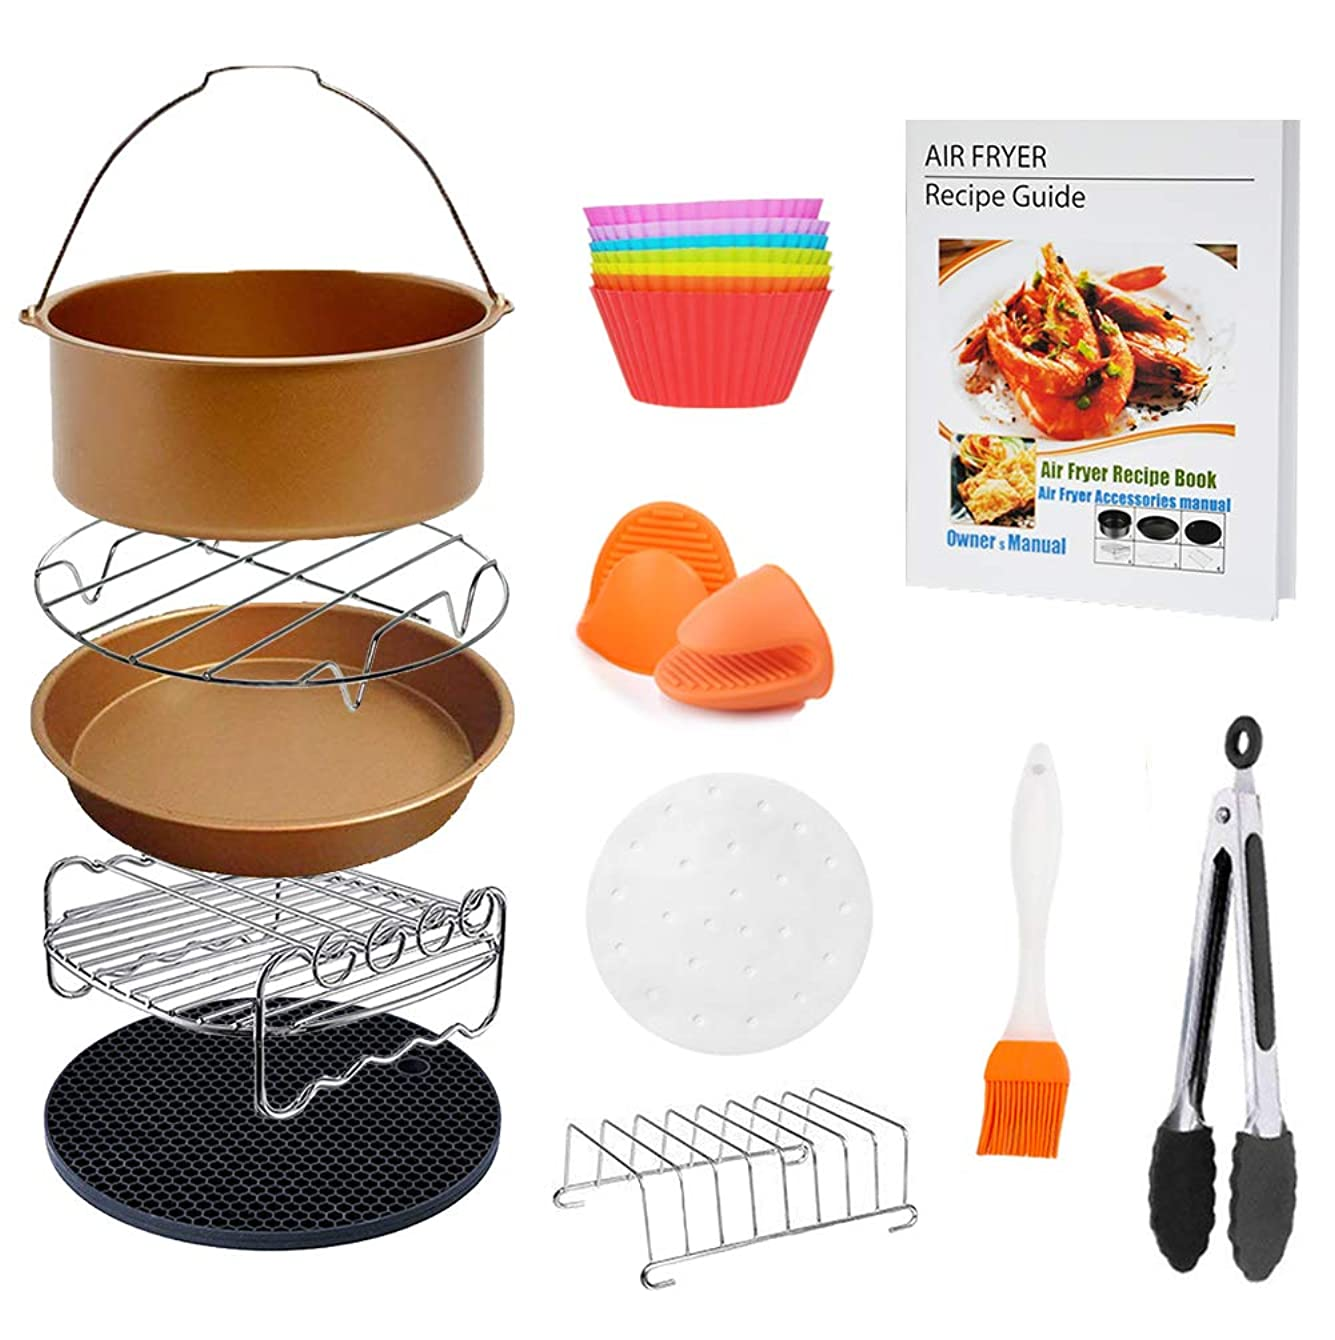 8 inch XL Air Fryer Accessories 11 pcs with Recipe Cookbook Compatible for Gowise USA Cozyna Airfryer XL 5.3QT – 5.8QT, Deluxe Deep Fryer Accessories Set of 12 - Champagne Gold